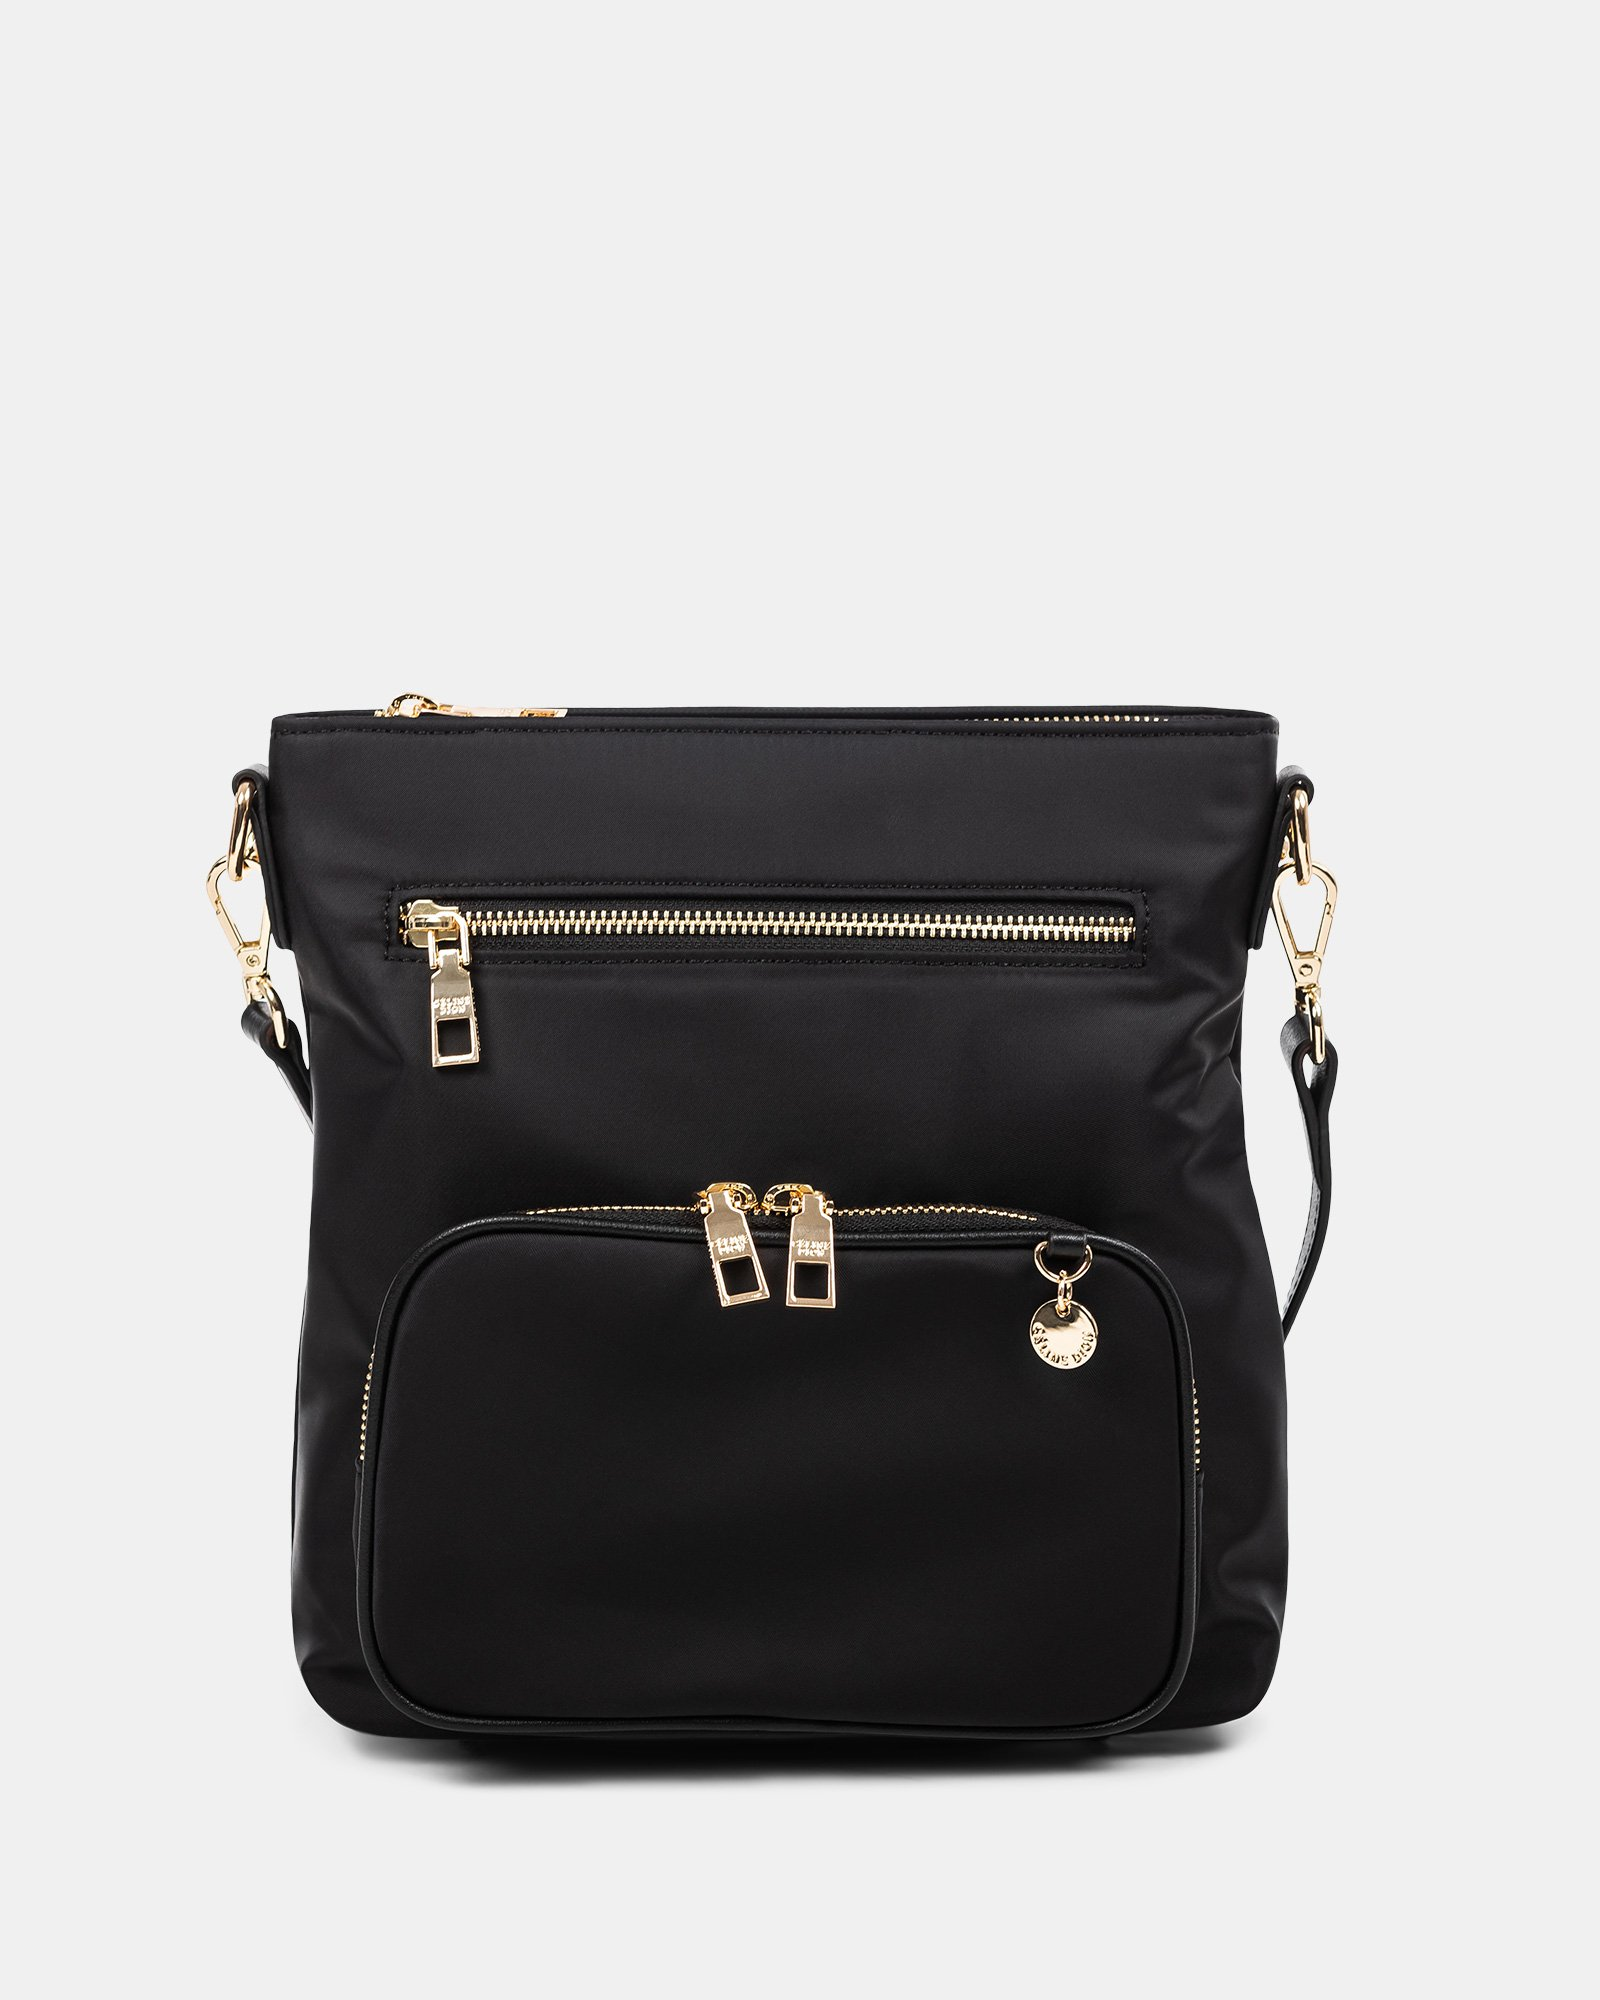 NYLON - CROSSBODY BAG WITH LEATHER TRIMS with RFID protection - Black - Céline Dion - Zoom